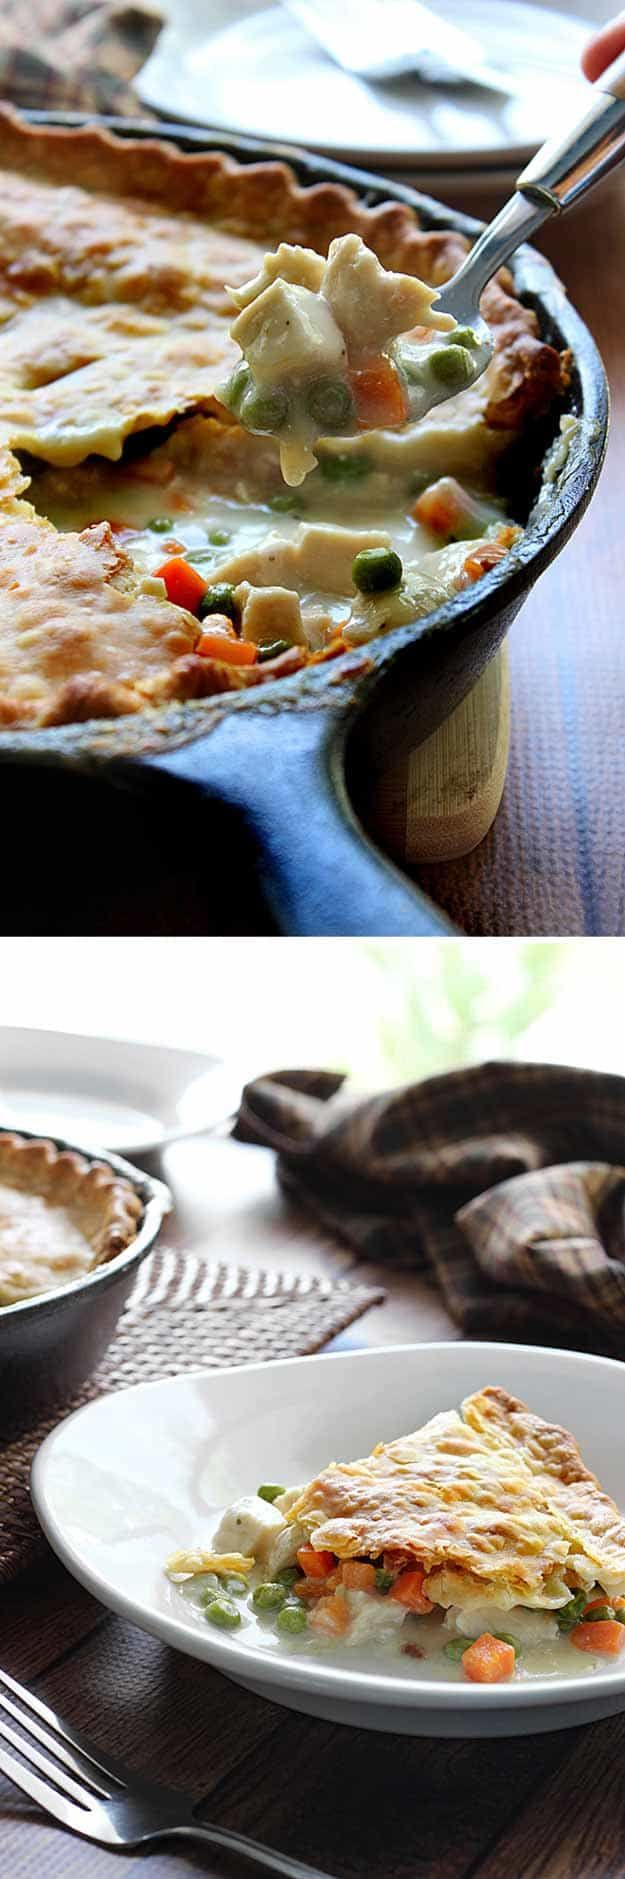 Skillet Chicken Pot Pie | Cooking With Your Cast Iron Skillet Everything You Need To Know